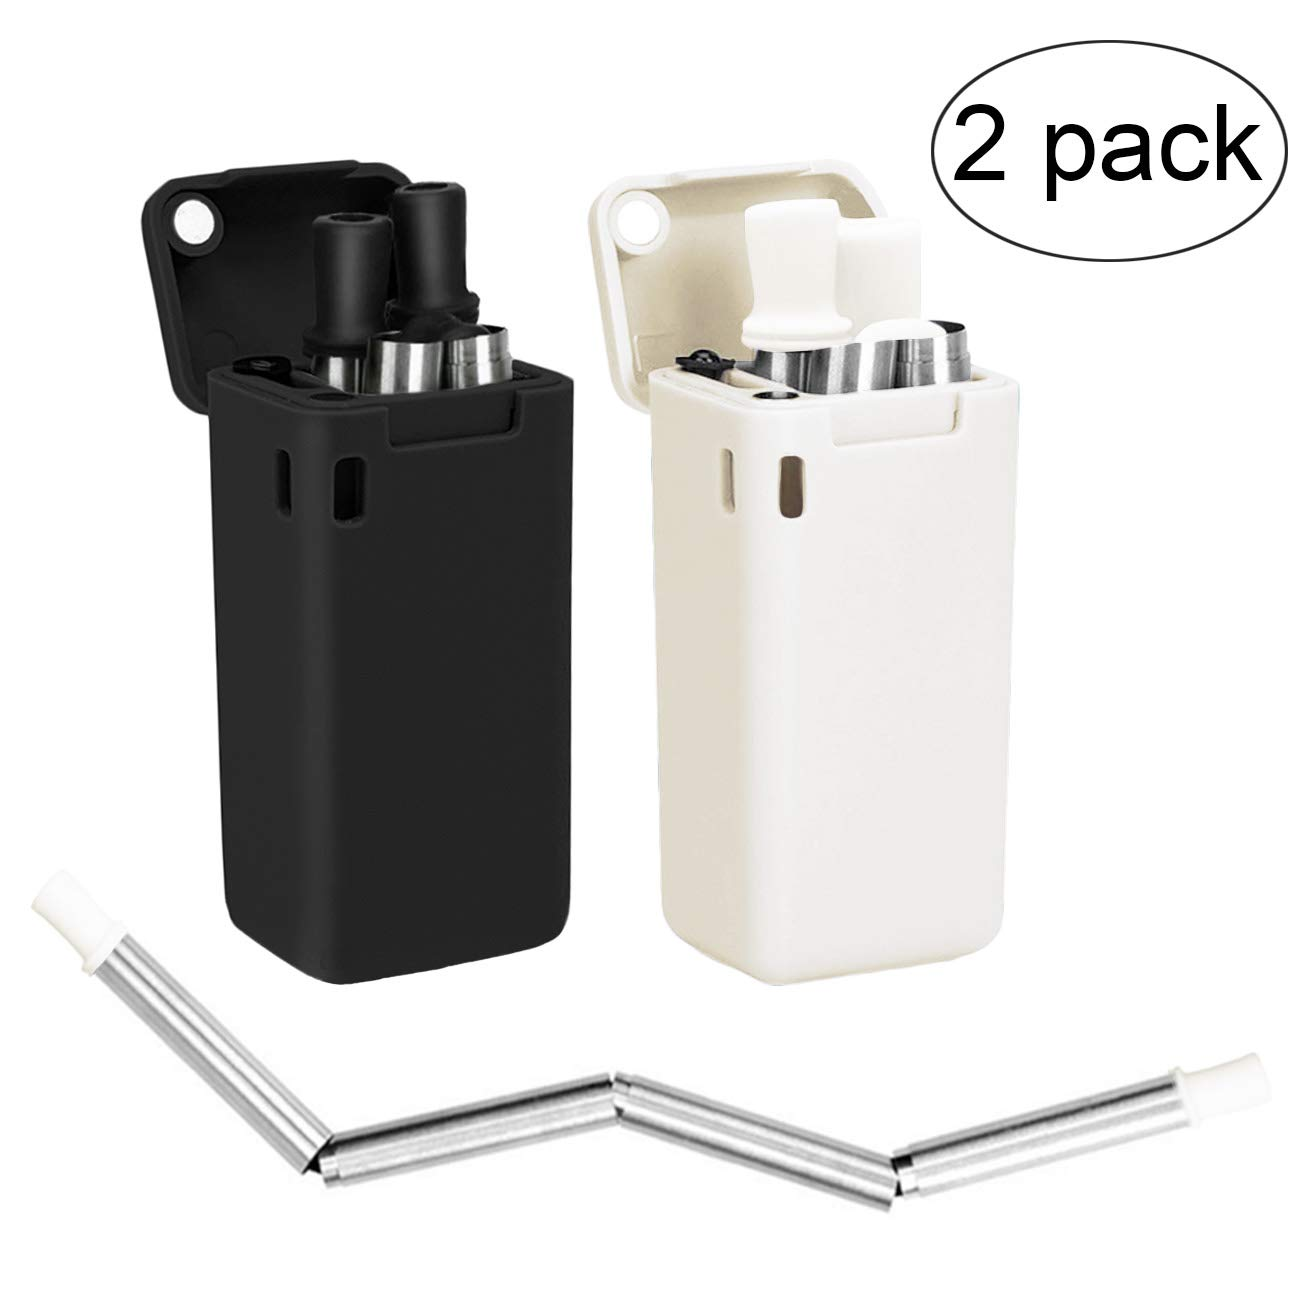 Senneny 2 Pack Collapsible Reusable Drinking Straws Stainless Steel Premium Food-Grade Folding Drinking Straws Keychain Portable Set with Hard Case Holder & Cleaning Brush (Black & White)